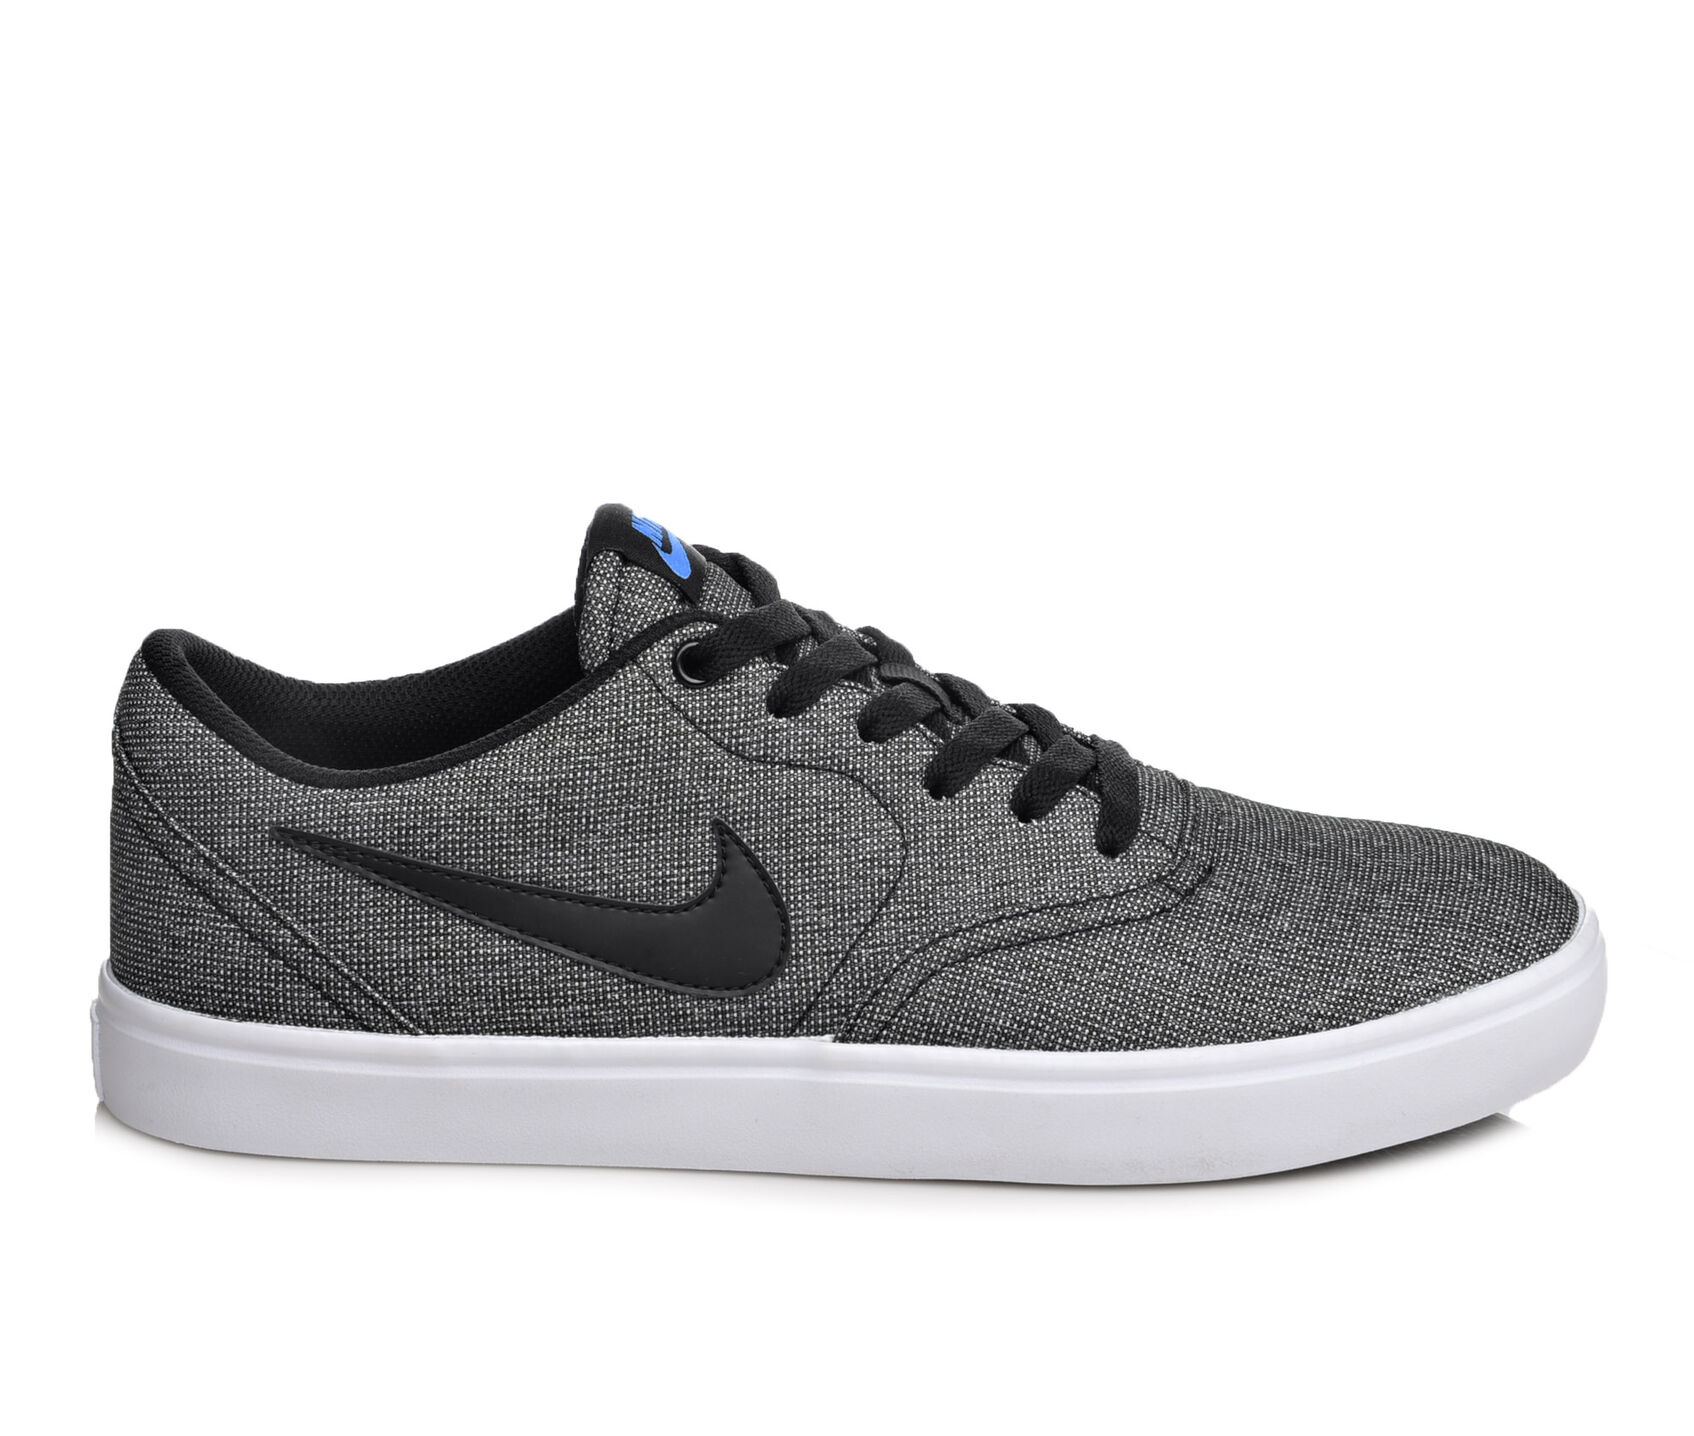 Nike Sb Skate Shoes Black Grey White